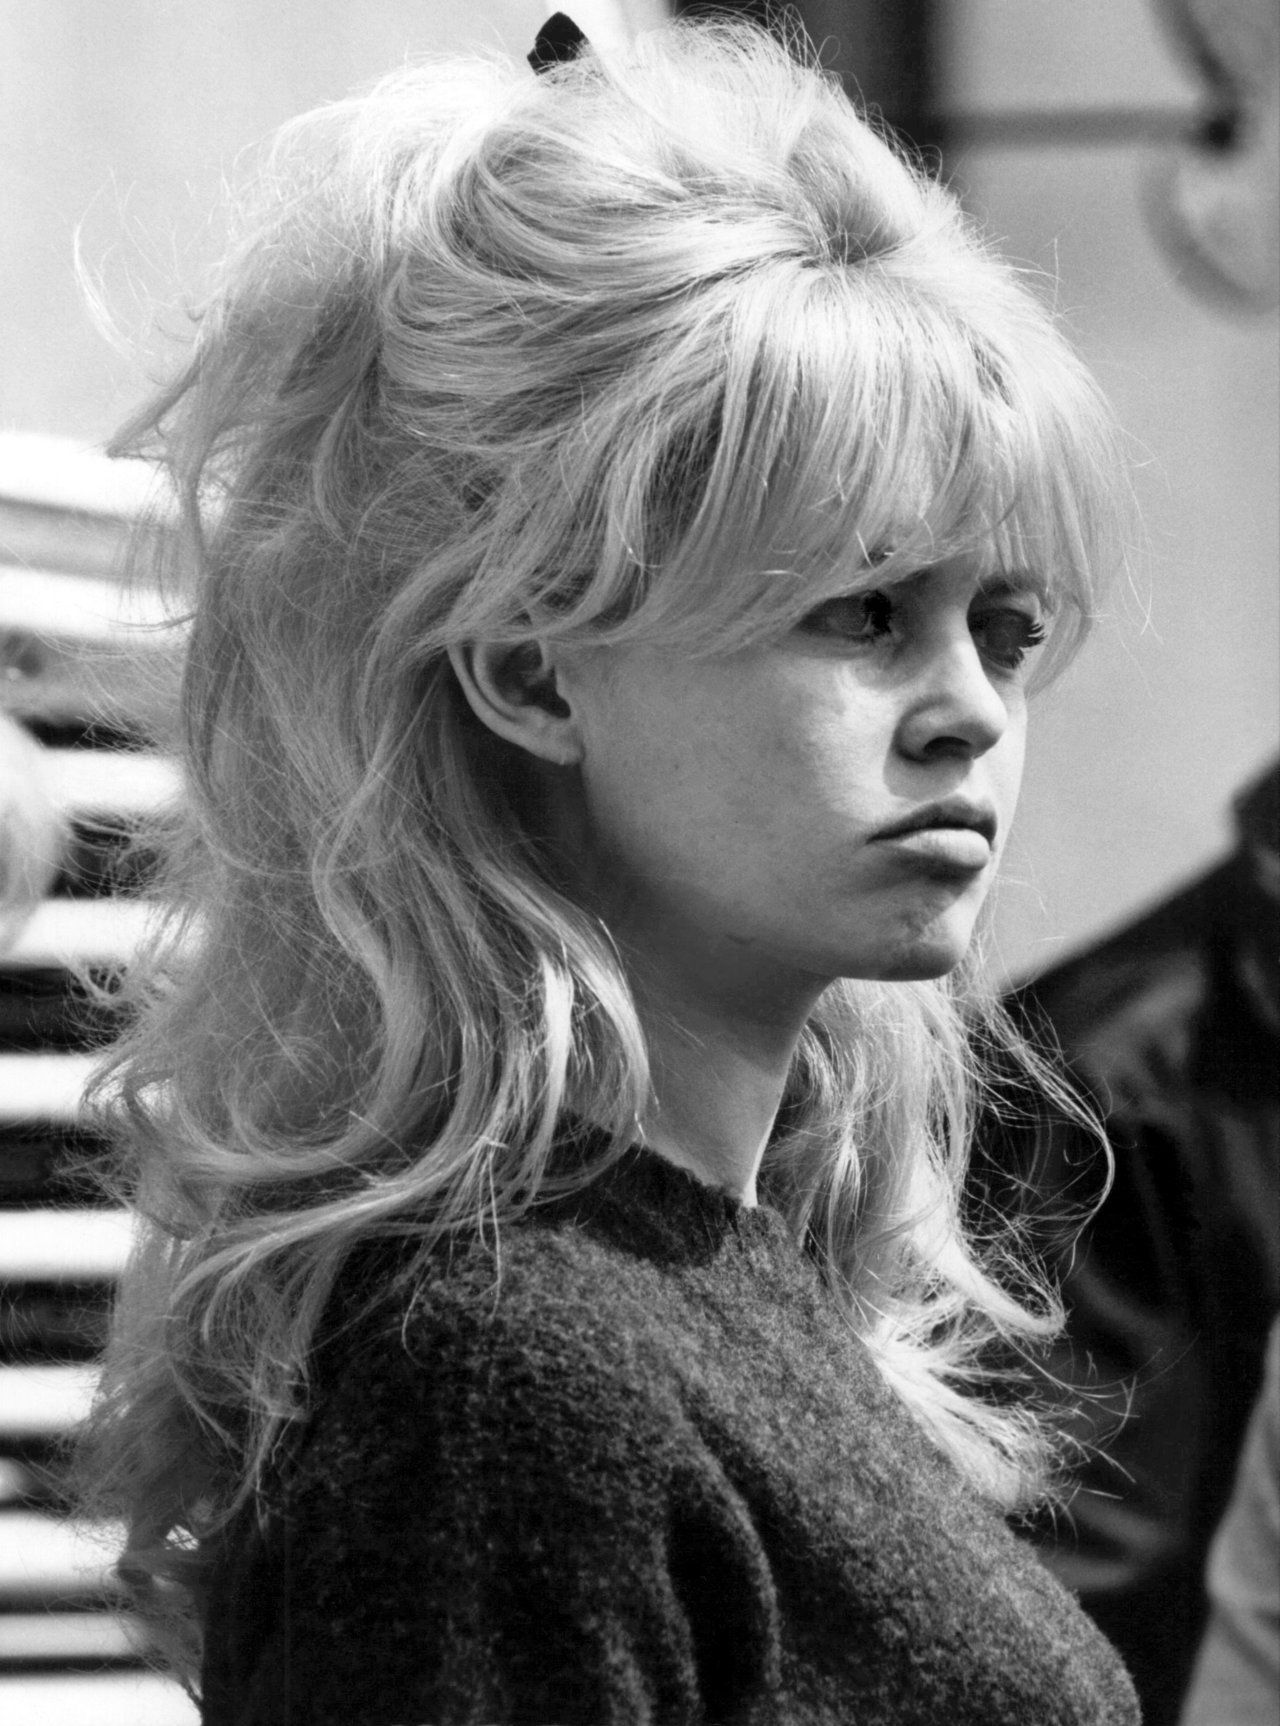 brigitte bardot and the perfect pout | sixties badass broad